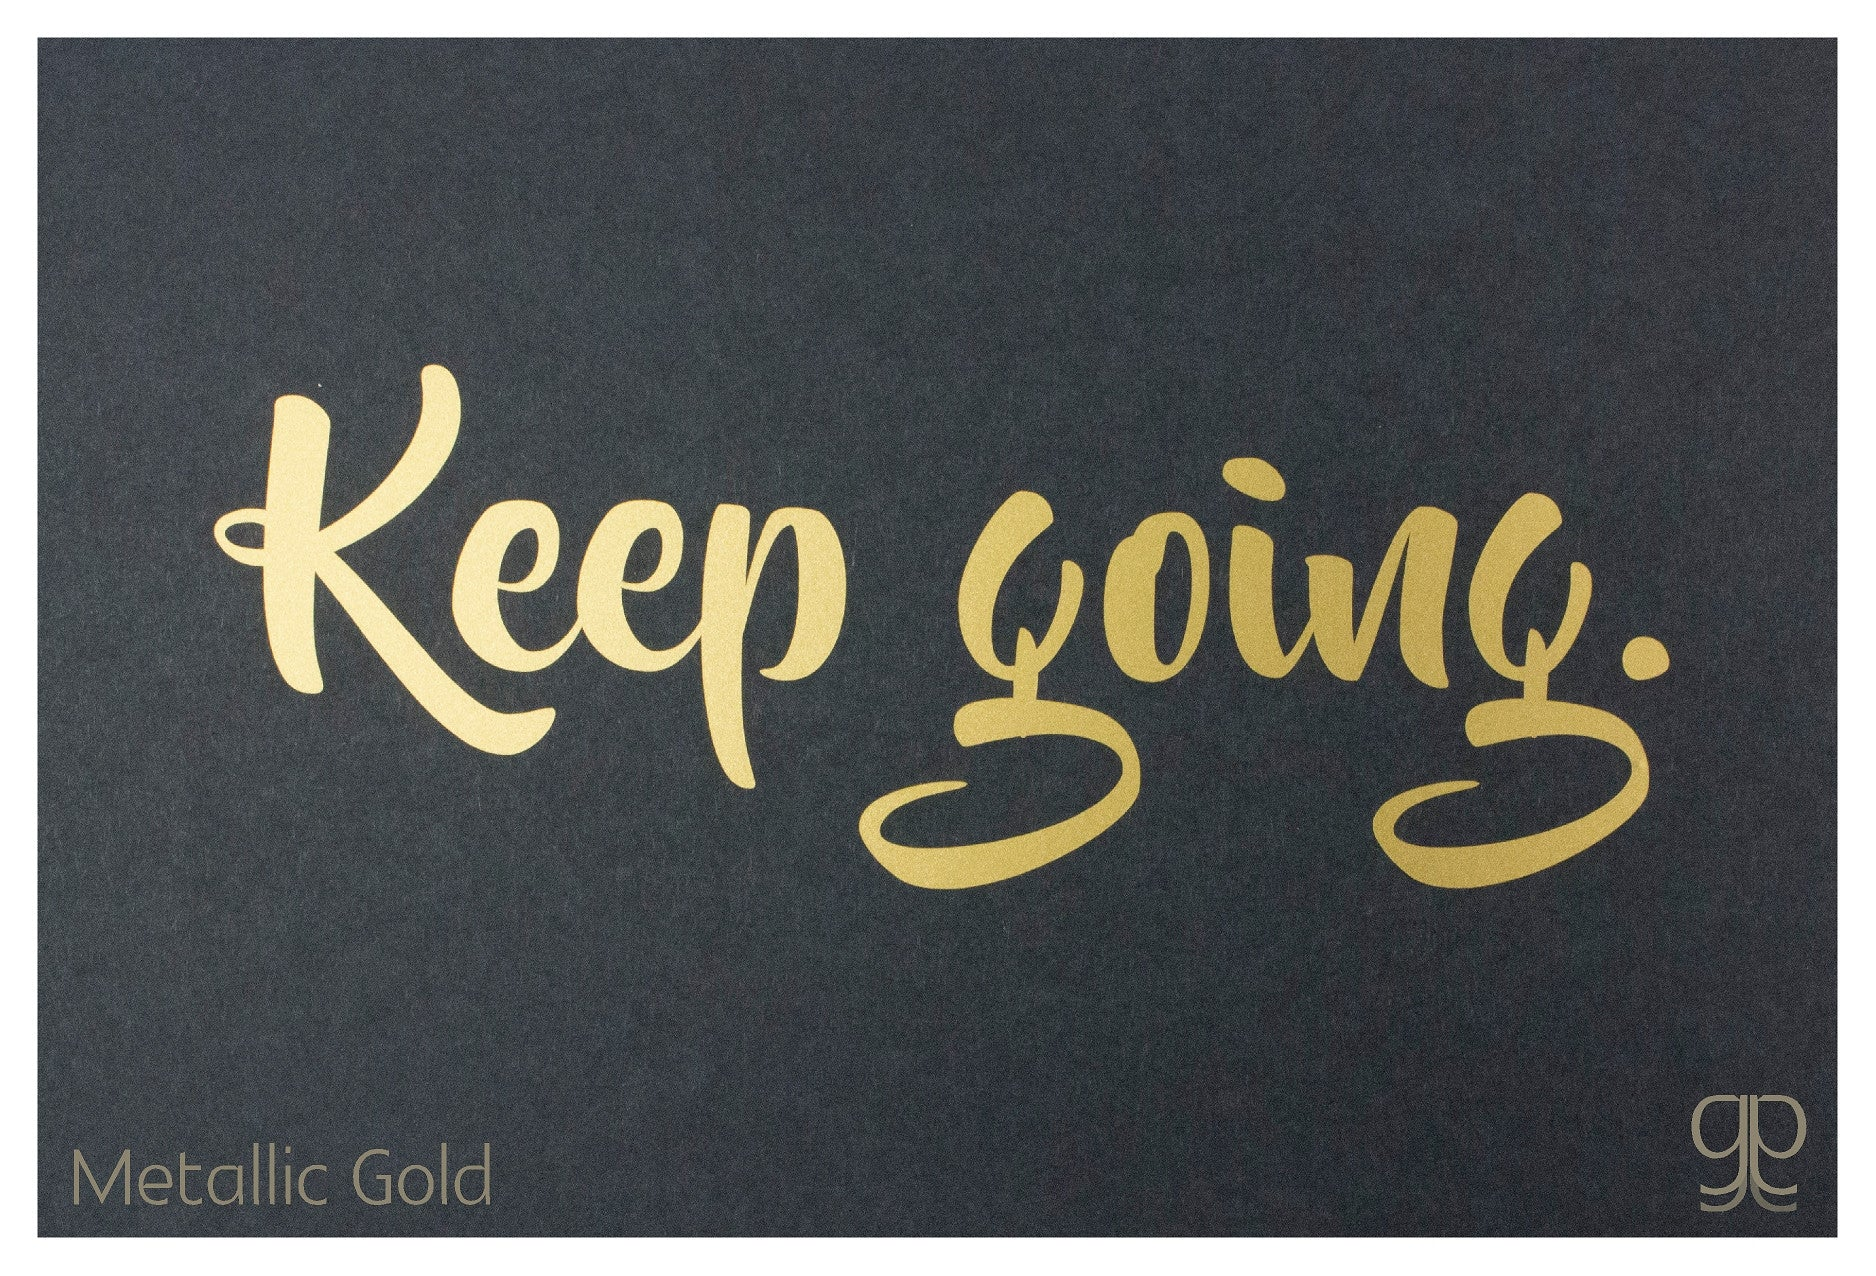 Large Decal - 'Keep Going'